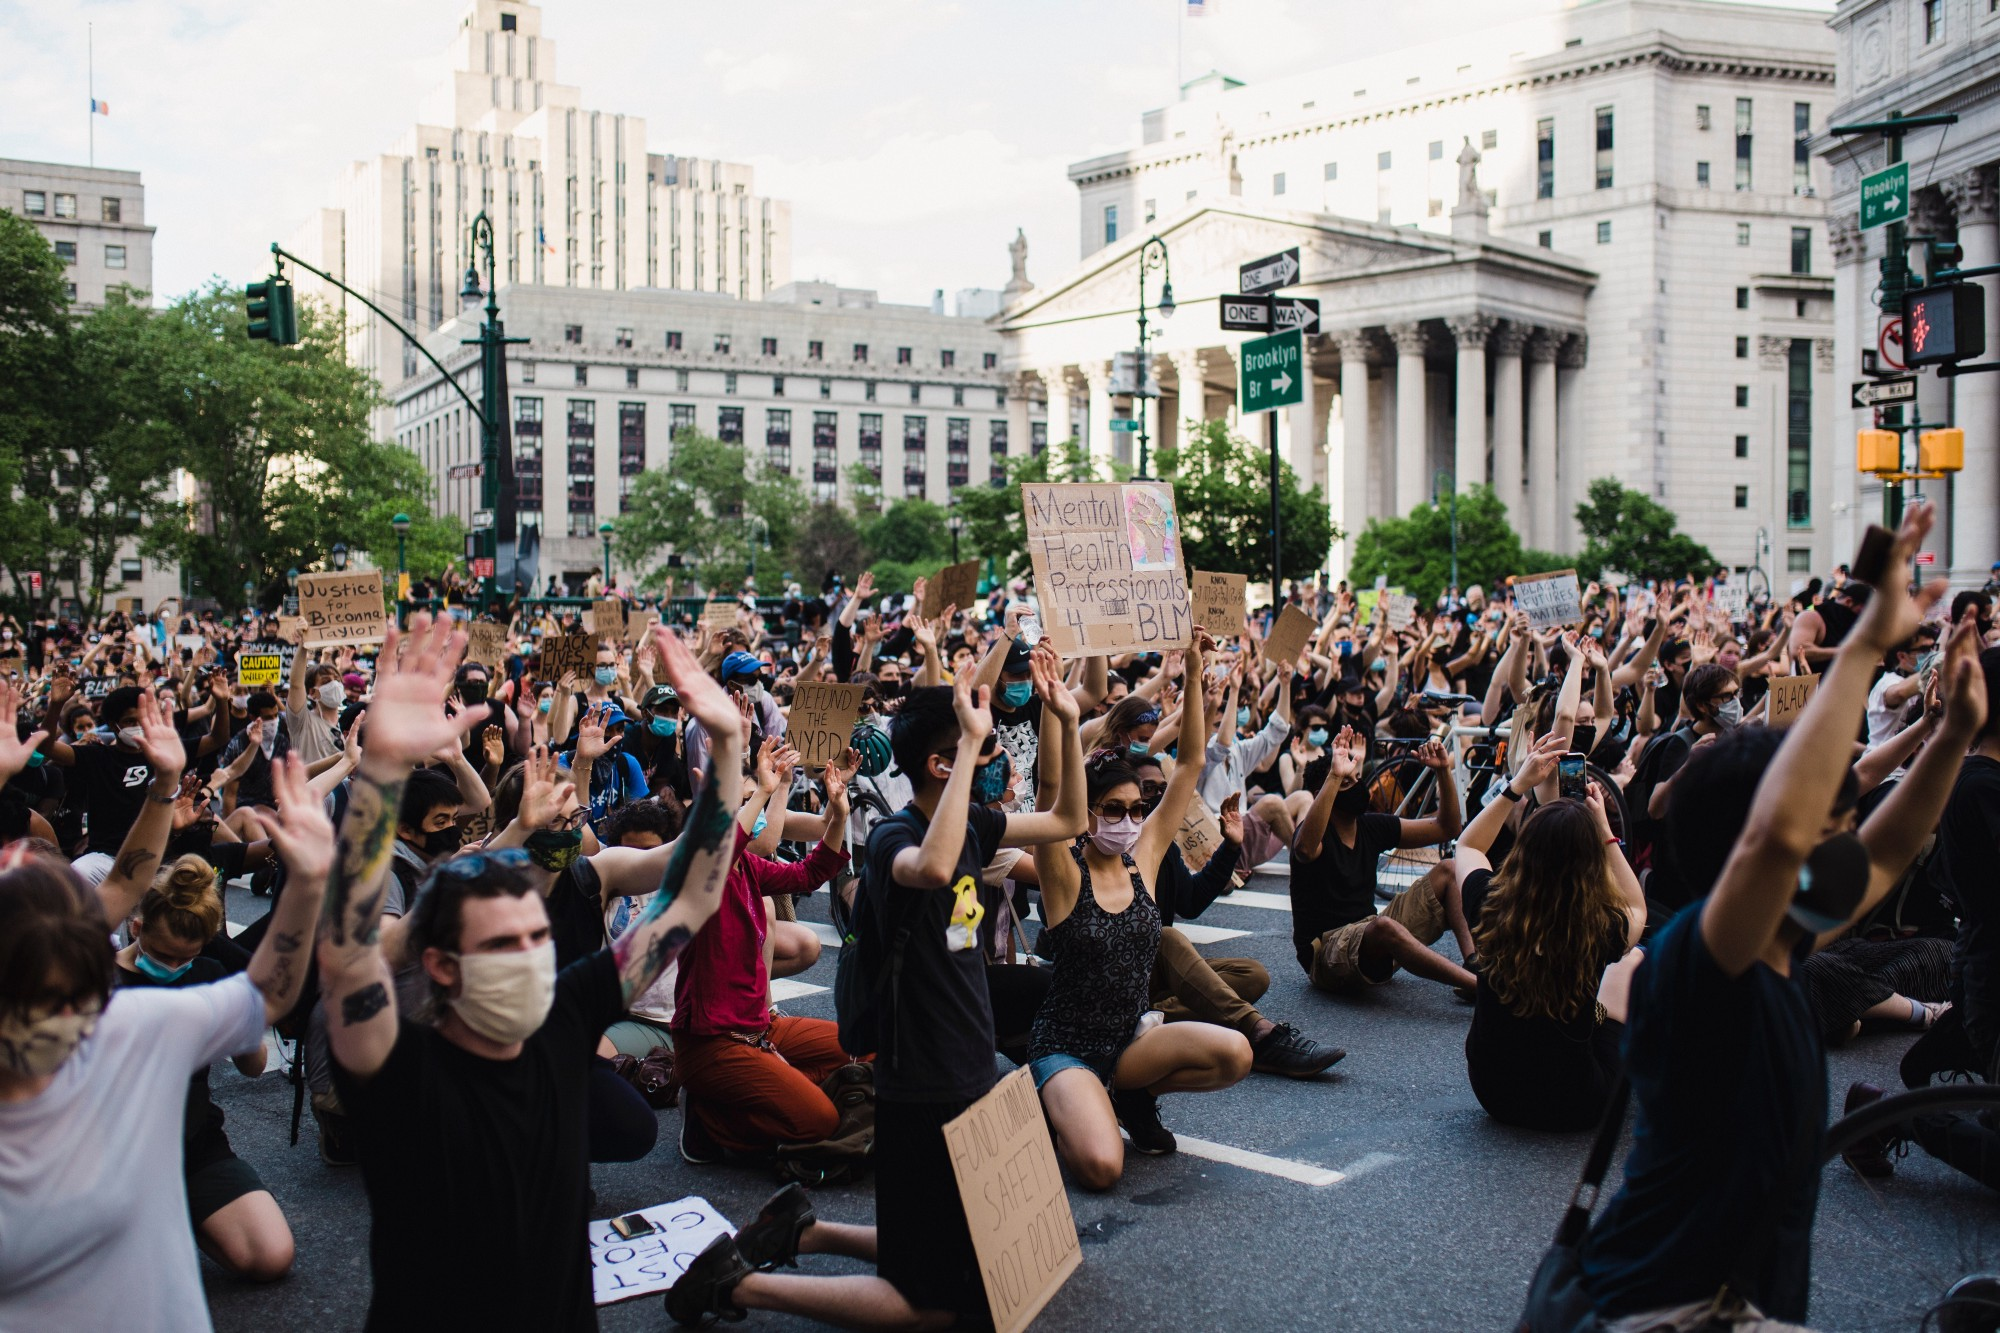 Crowd of people, predominantly White, participating in a Black Lives Matter Protest